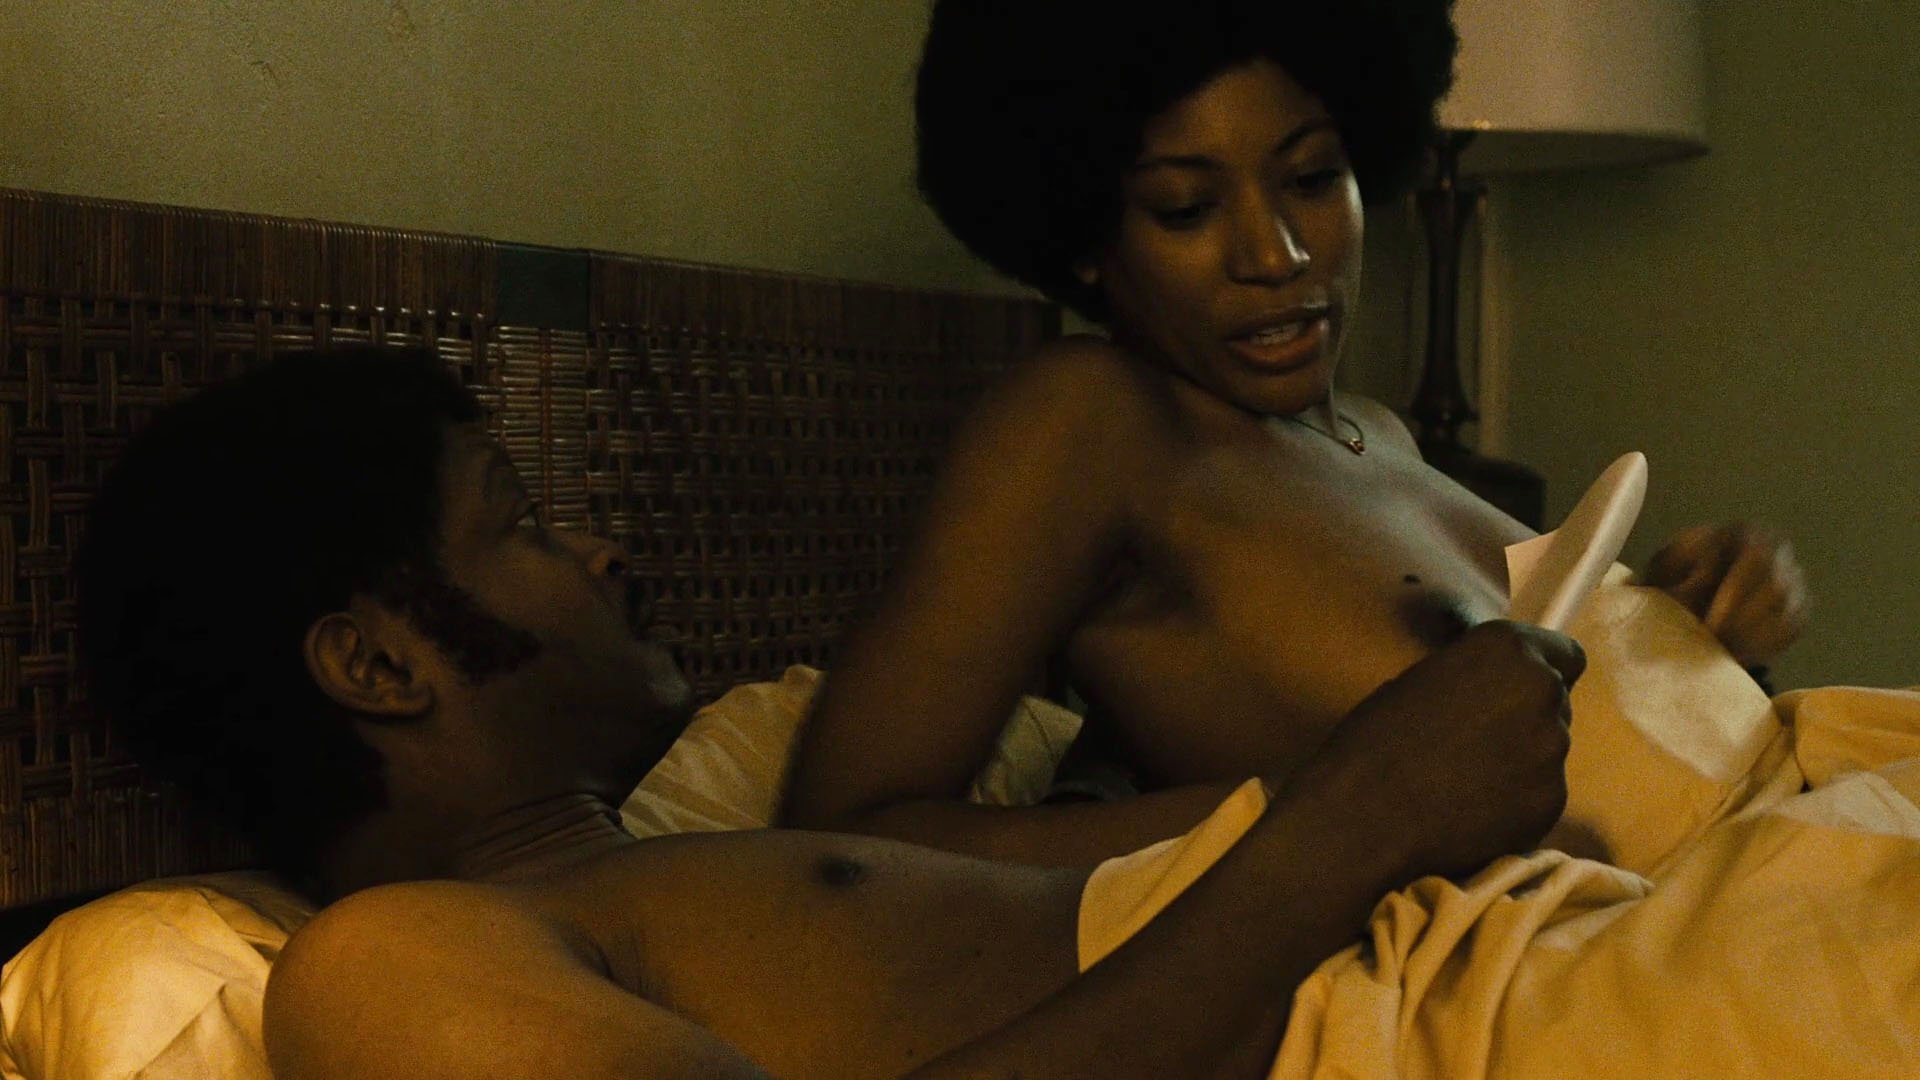 Natalie Paul nude - The Deuce s01e08 (2017)